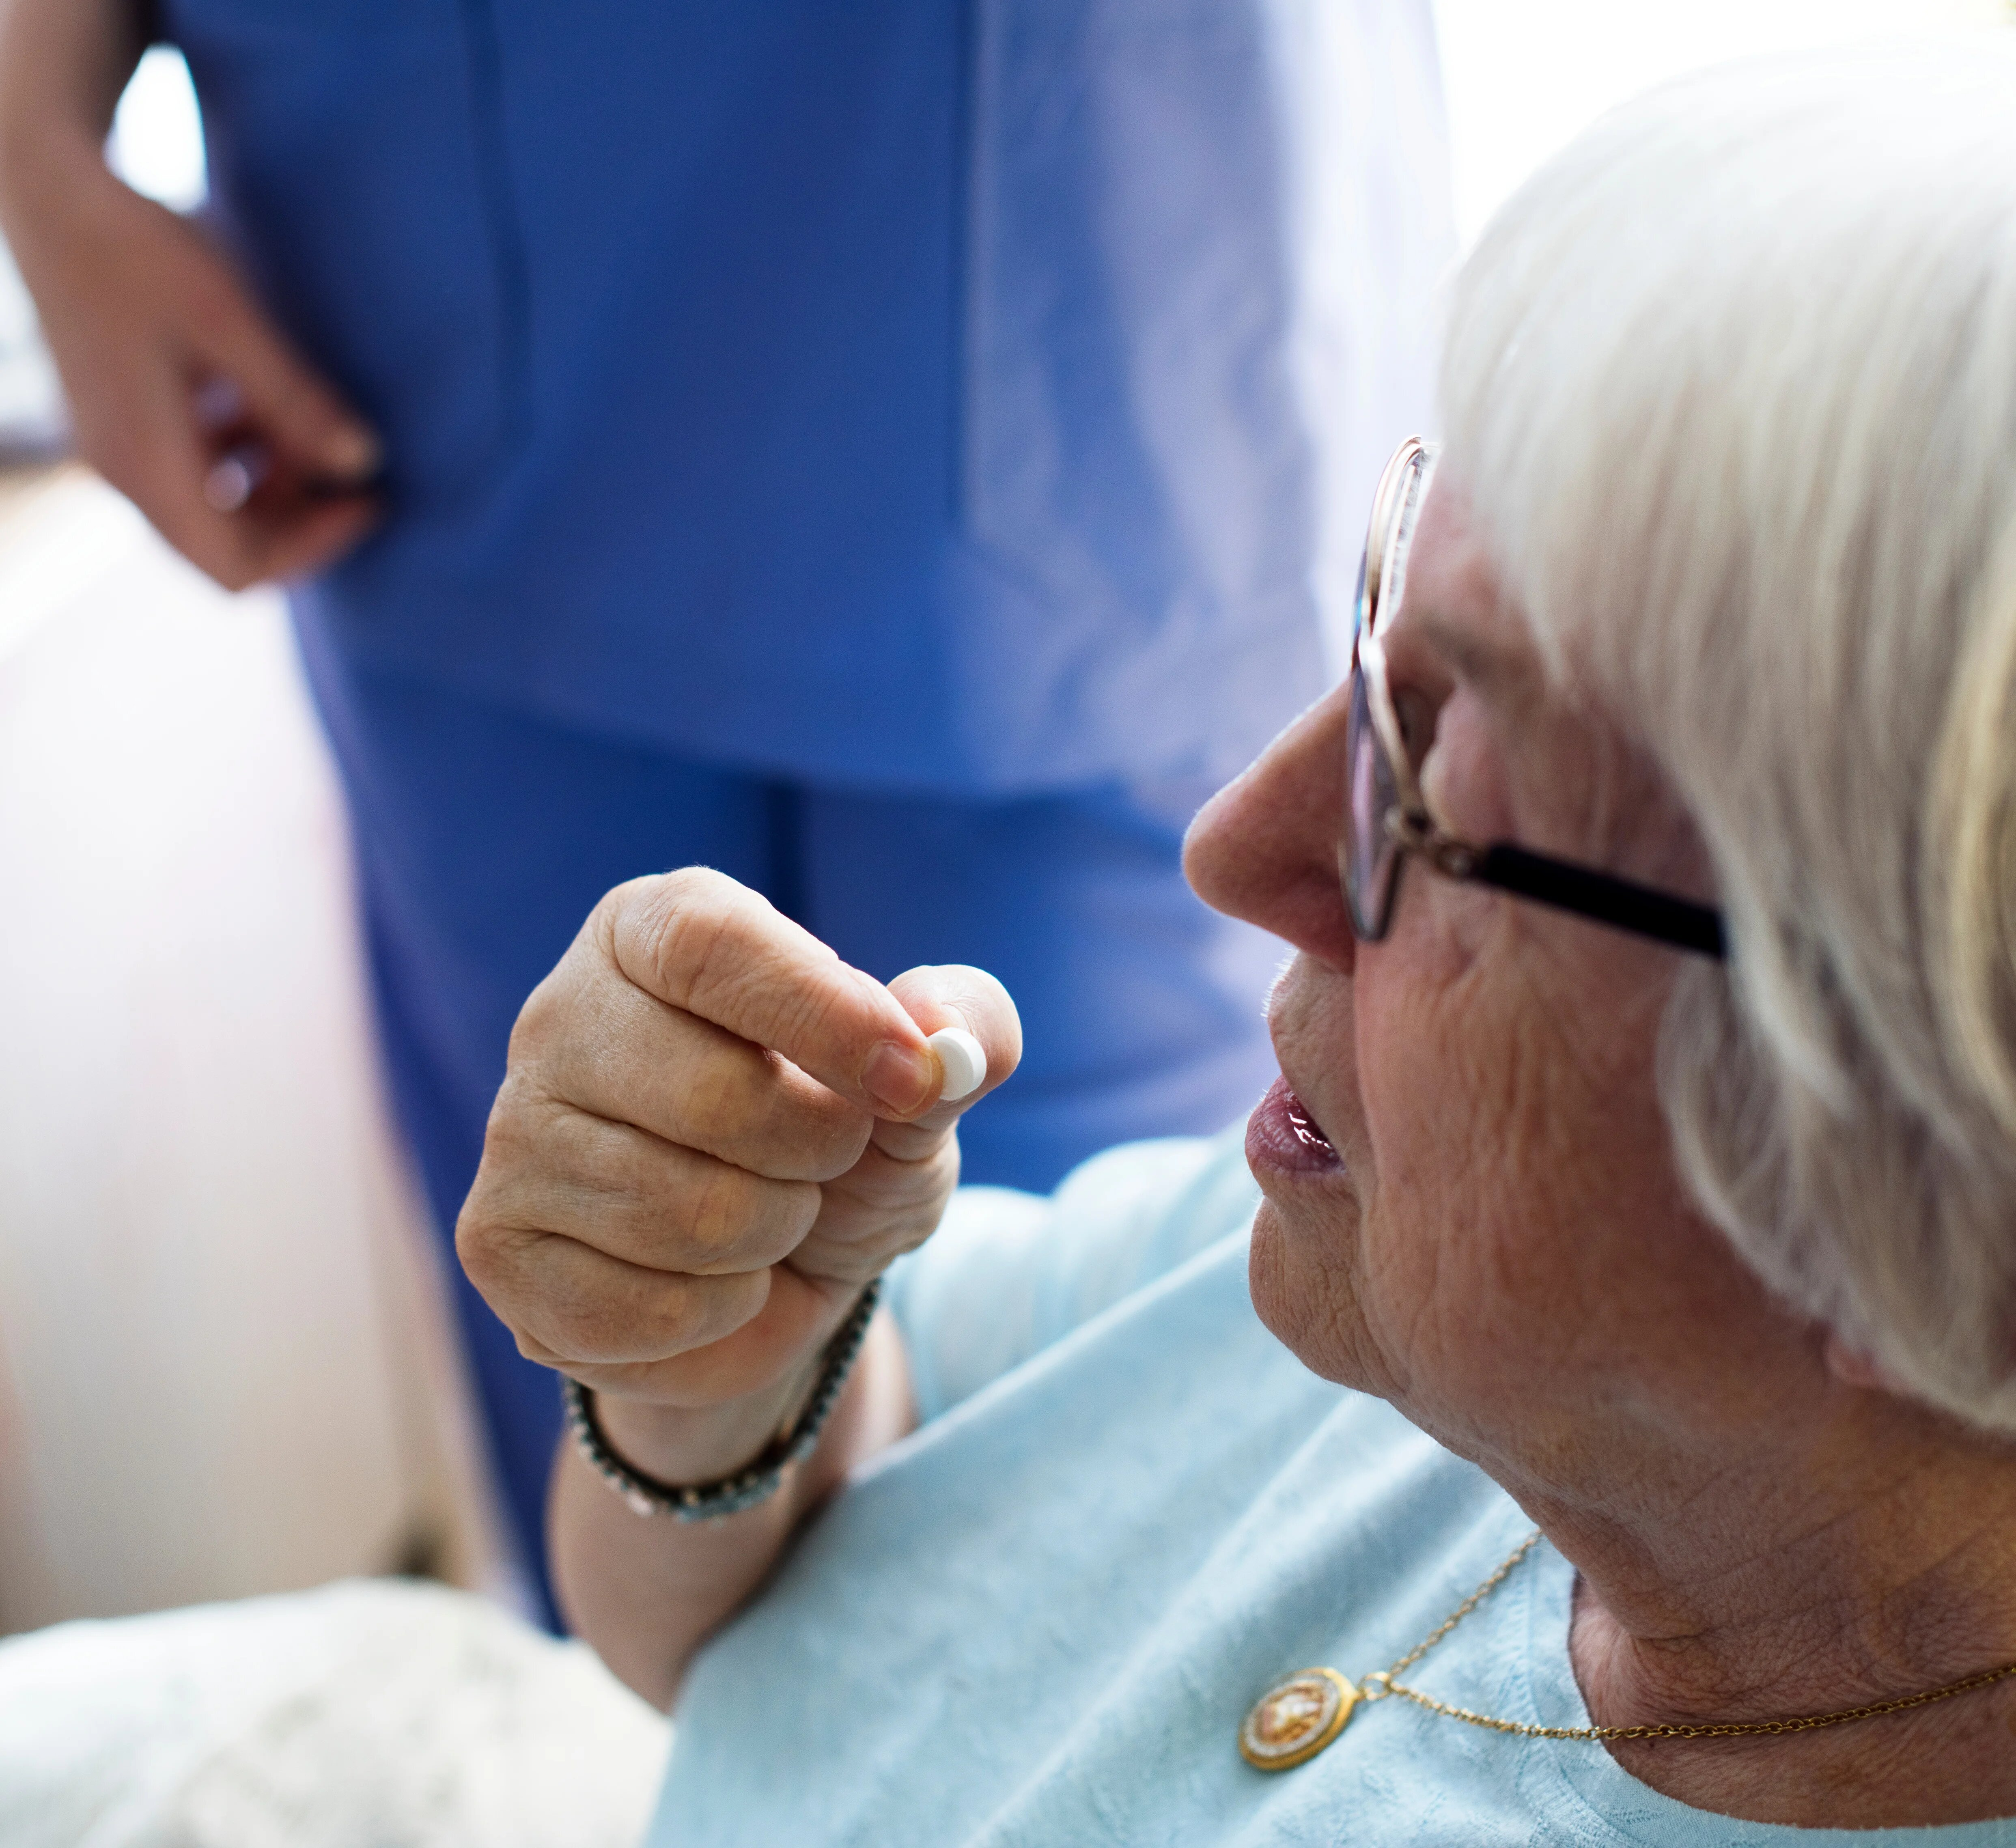 Patient taking medication in hospital.